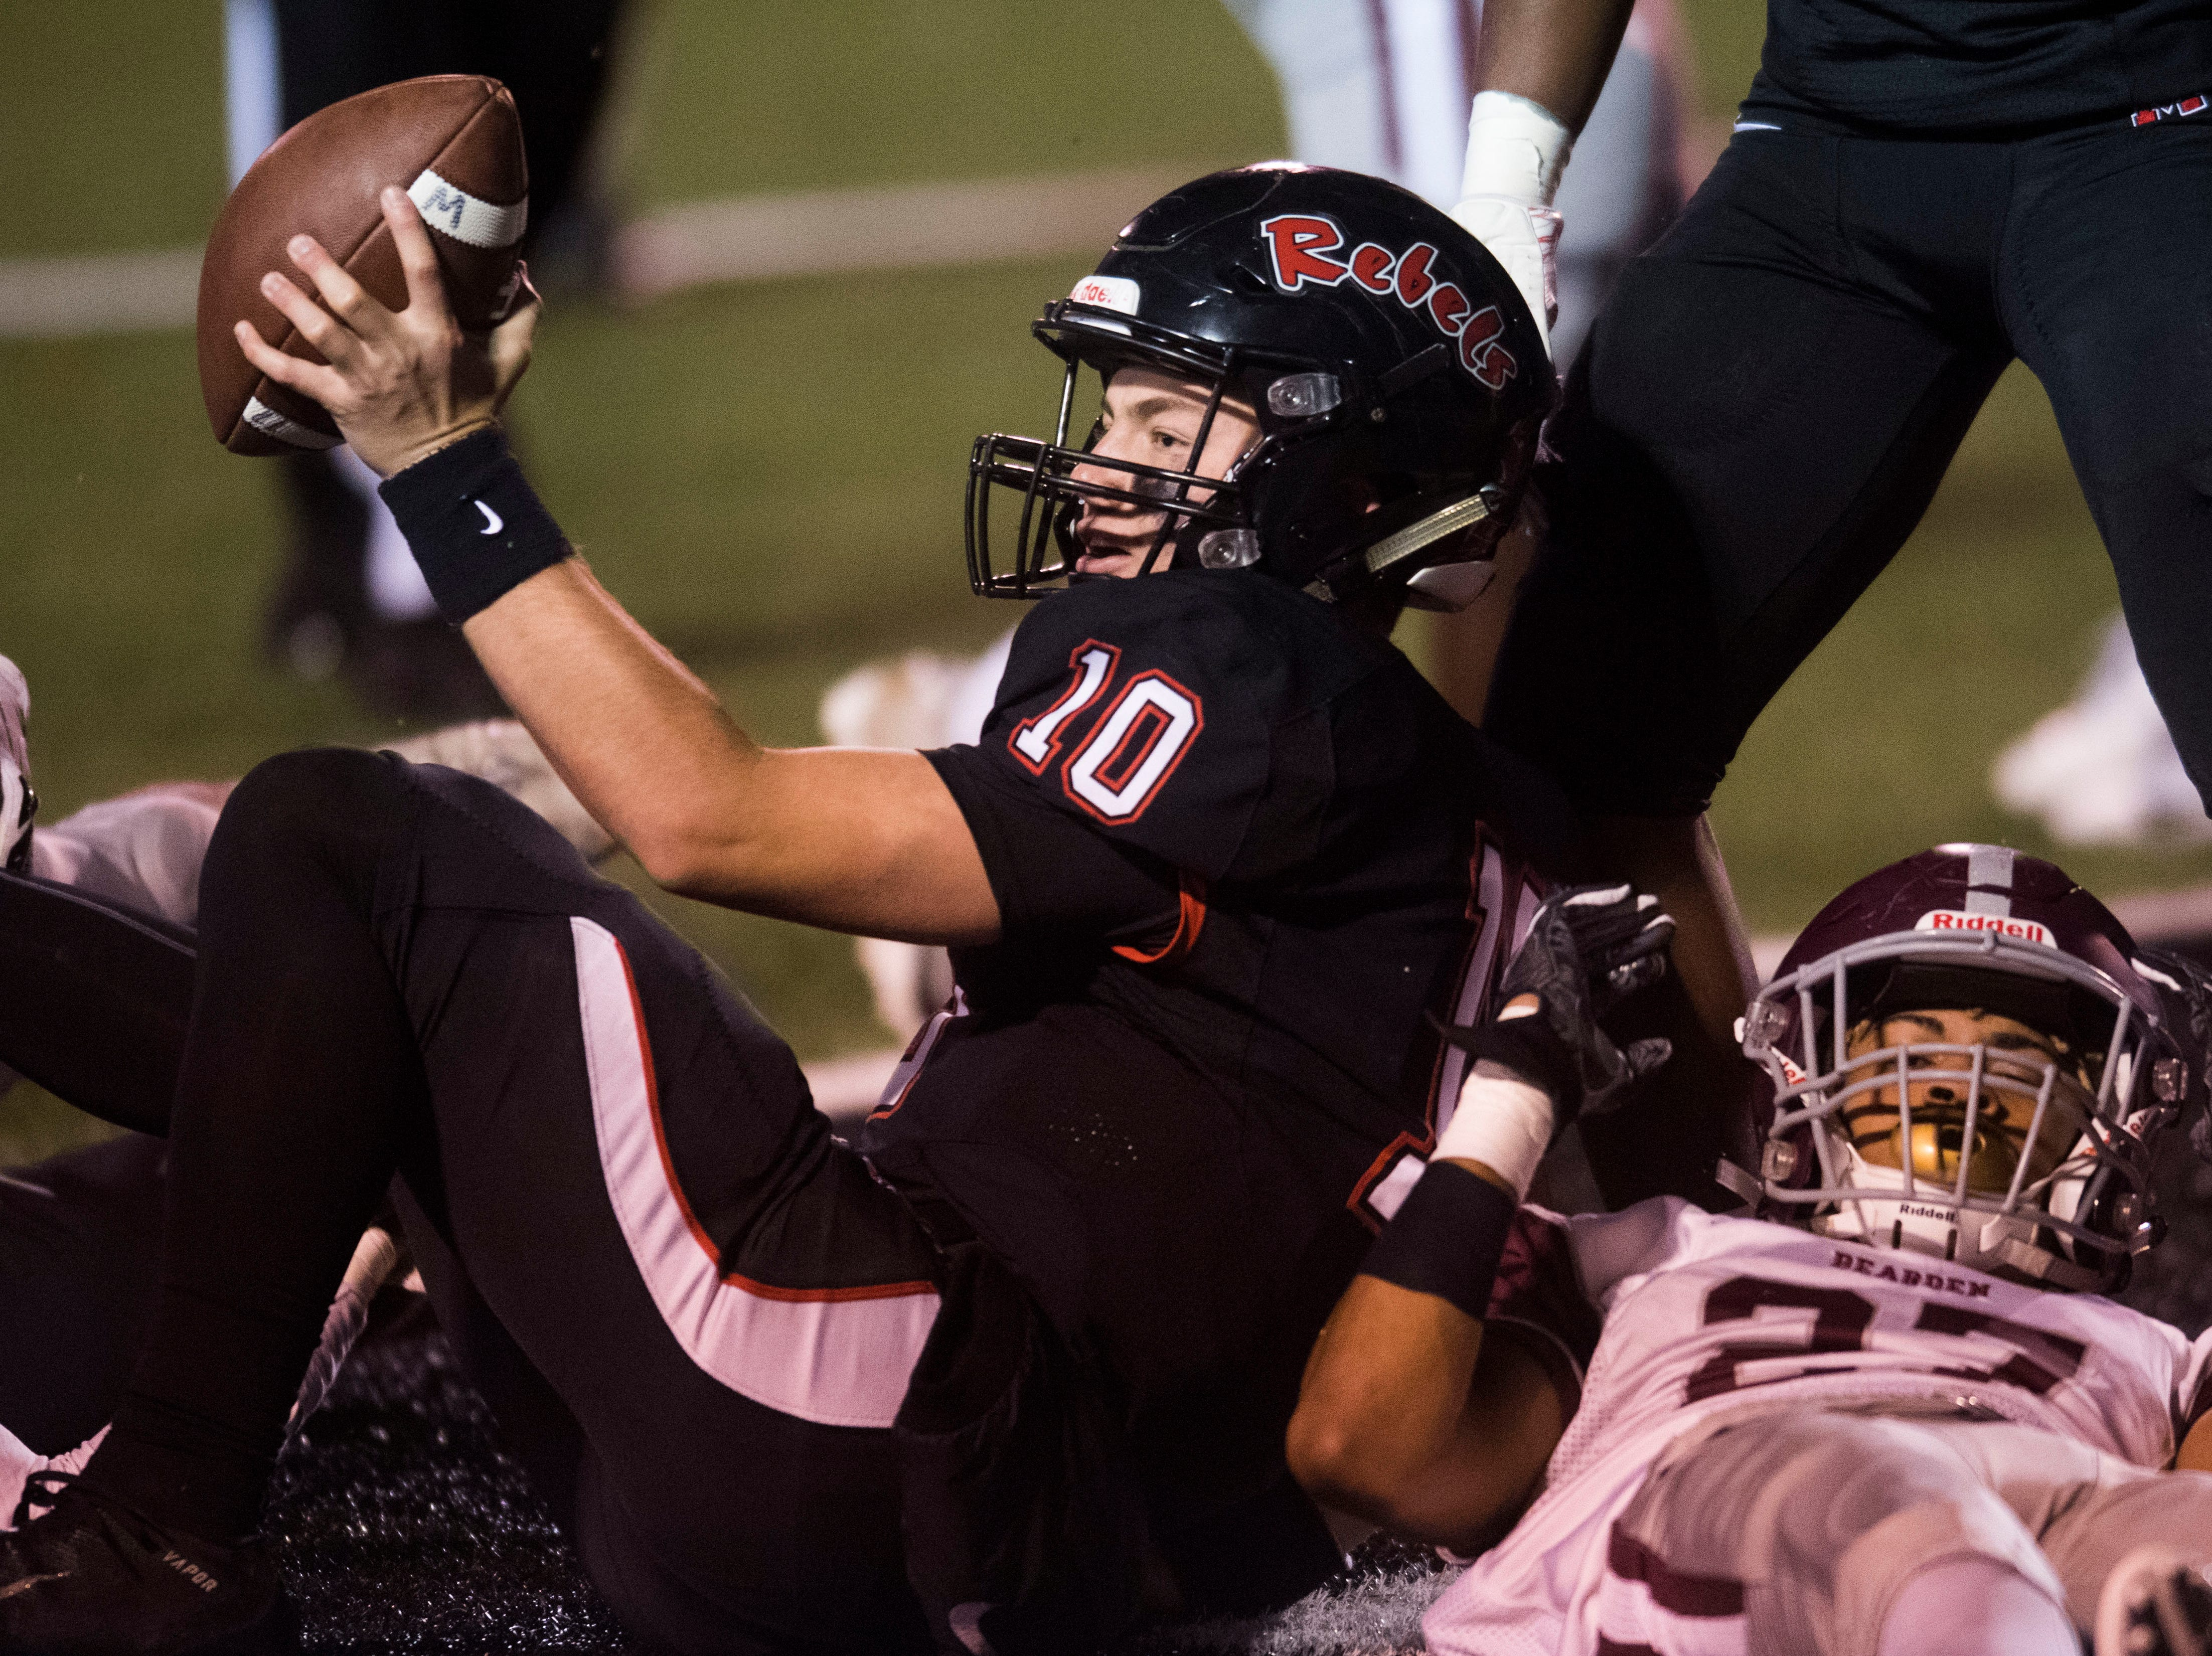 Maryville's Braden Carnes (10) holds the ball up after making a touchdown during a first round playoff game between Maryville and Bearden at Maryville, Friday, Nov. 2, 2018. Maryville defeated Bearden 28-7.